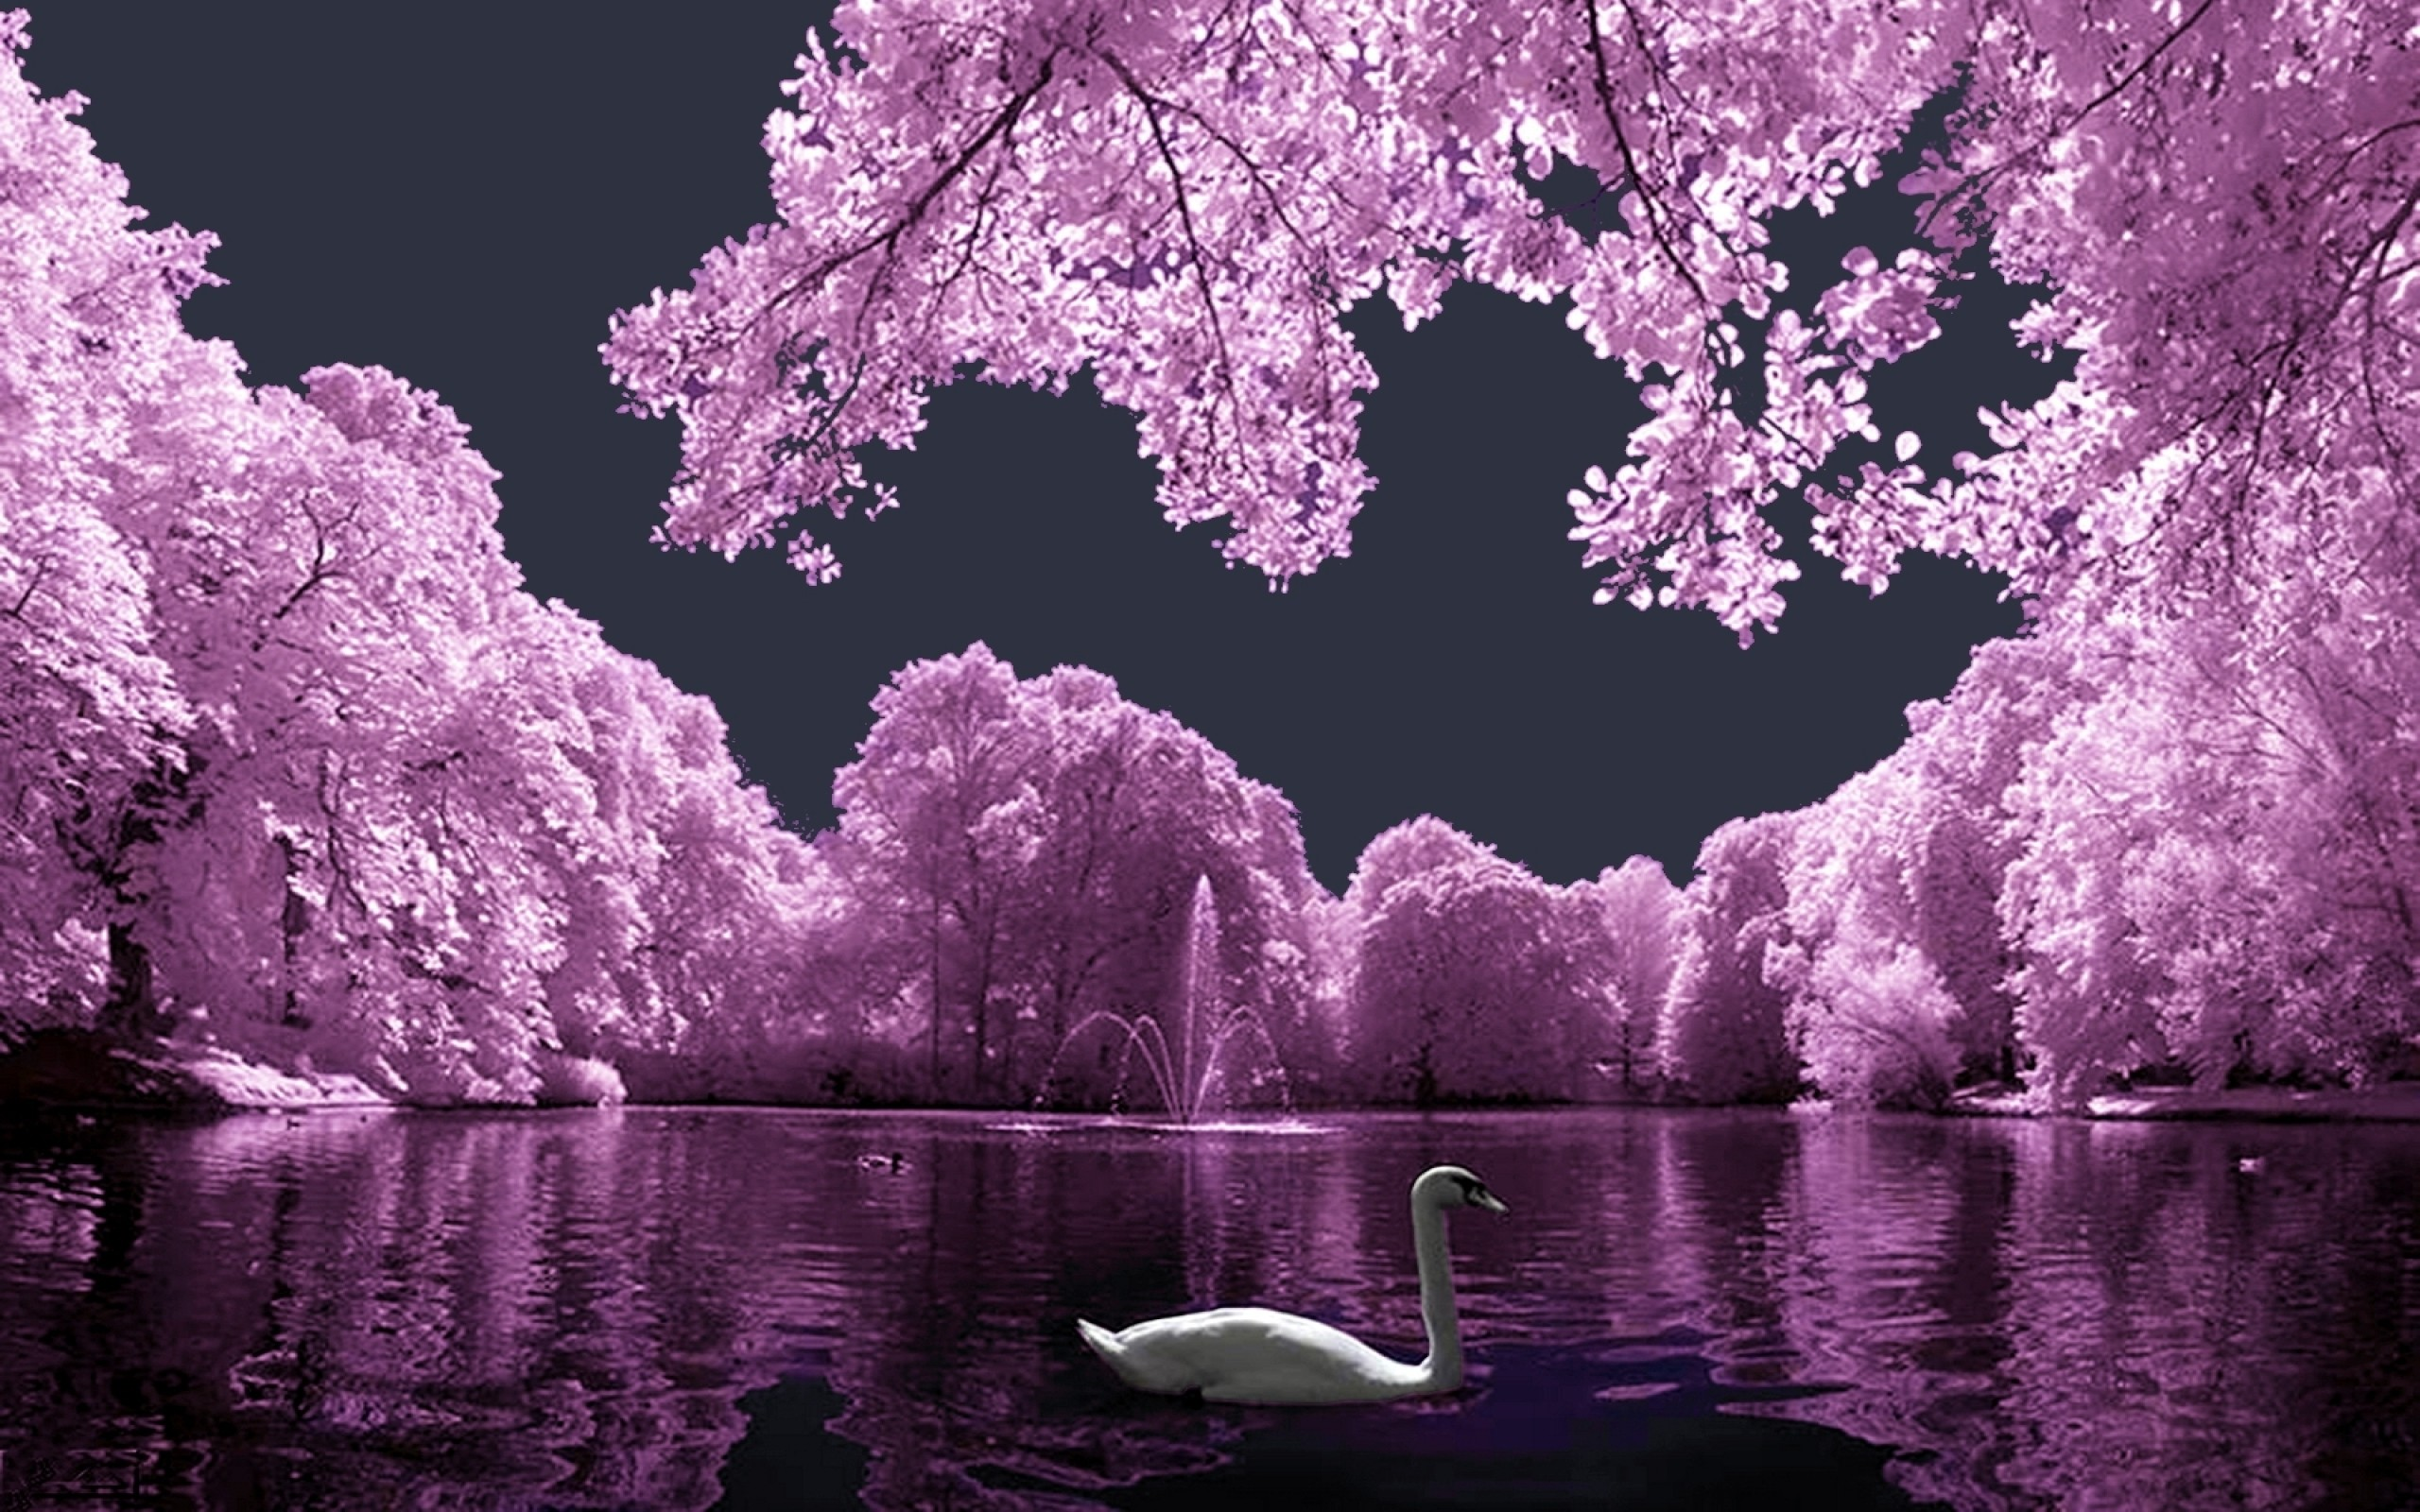 Res: 2560x1600, Pink Landscape With White Swan Wallpaper